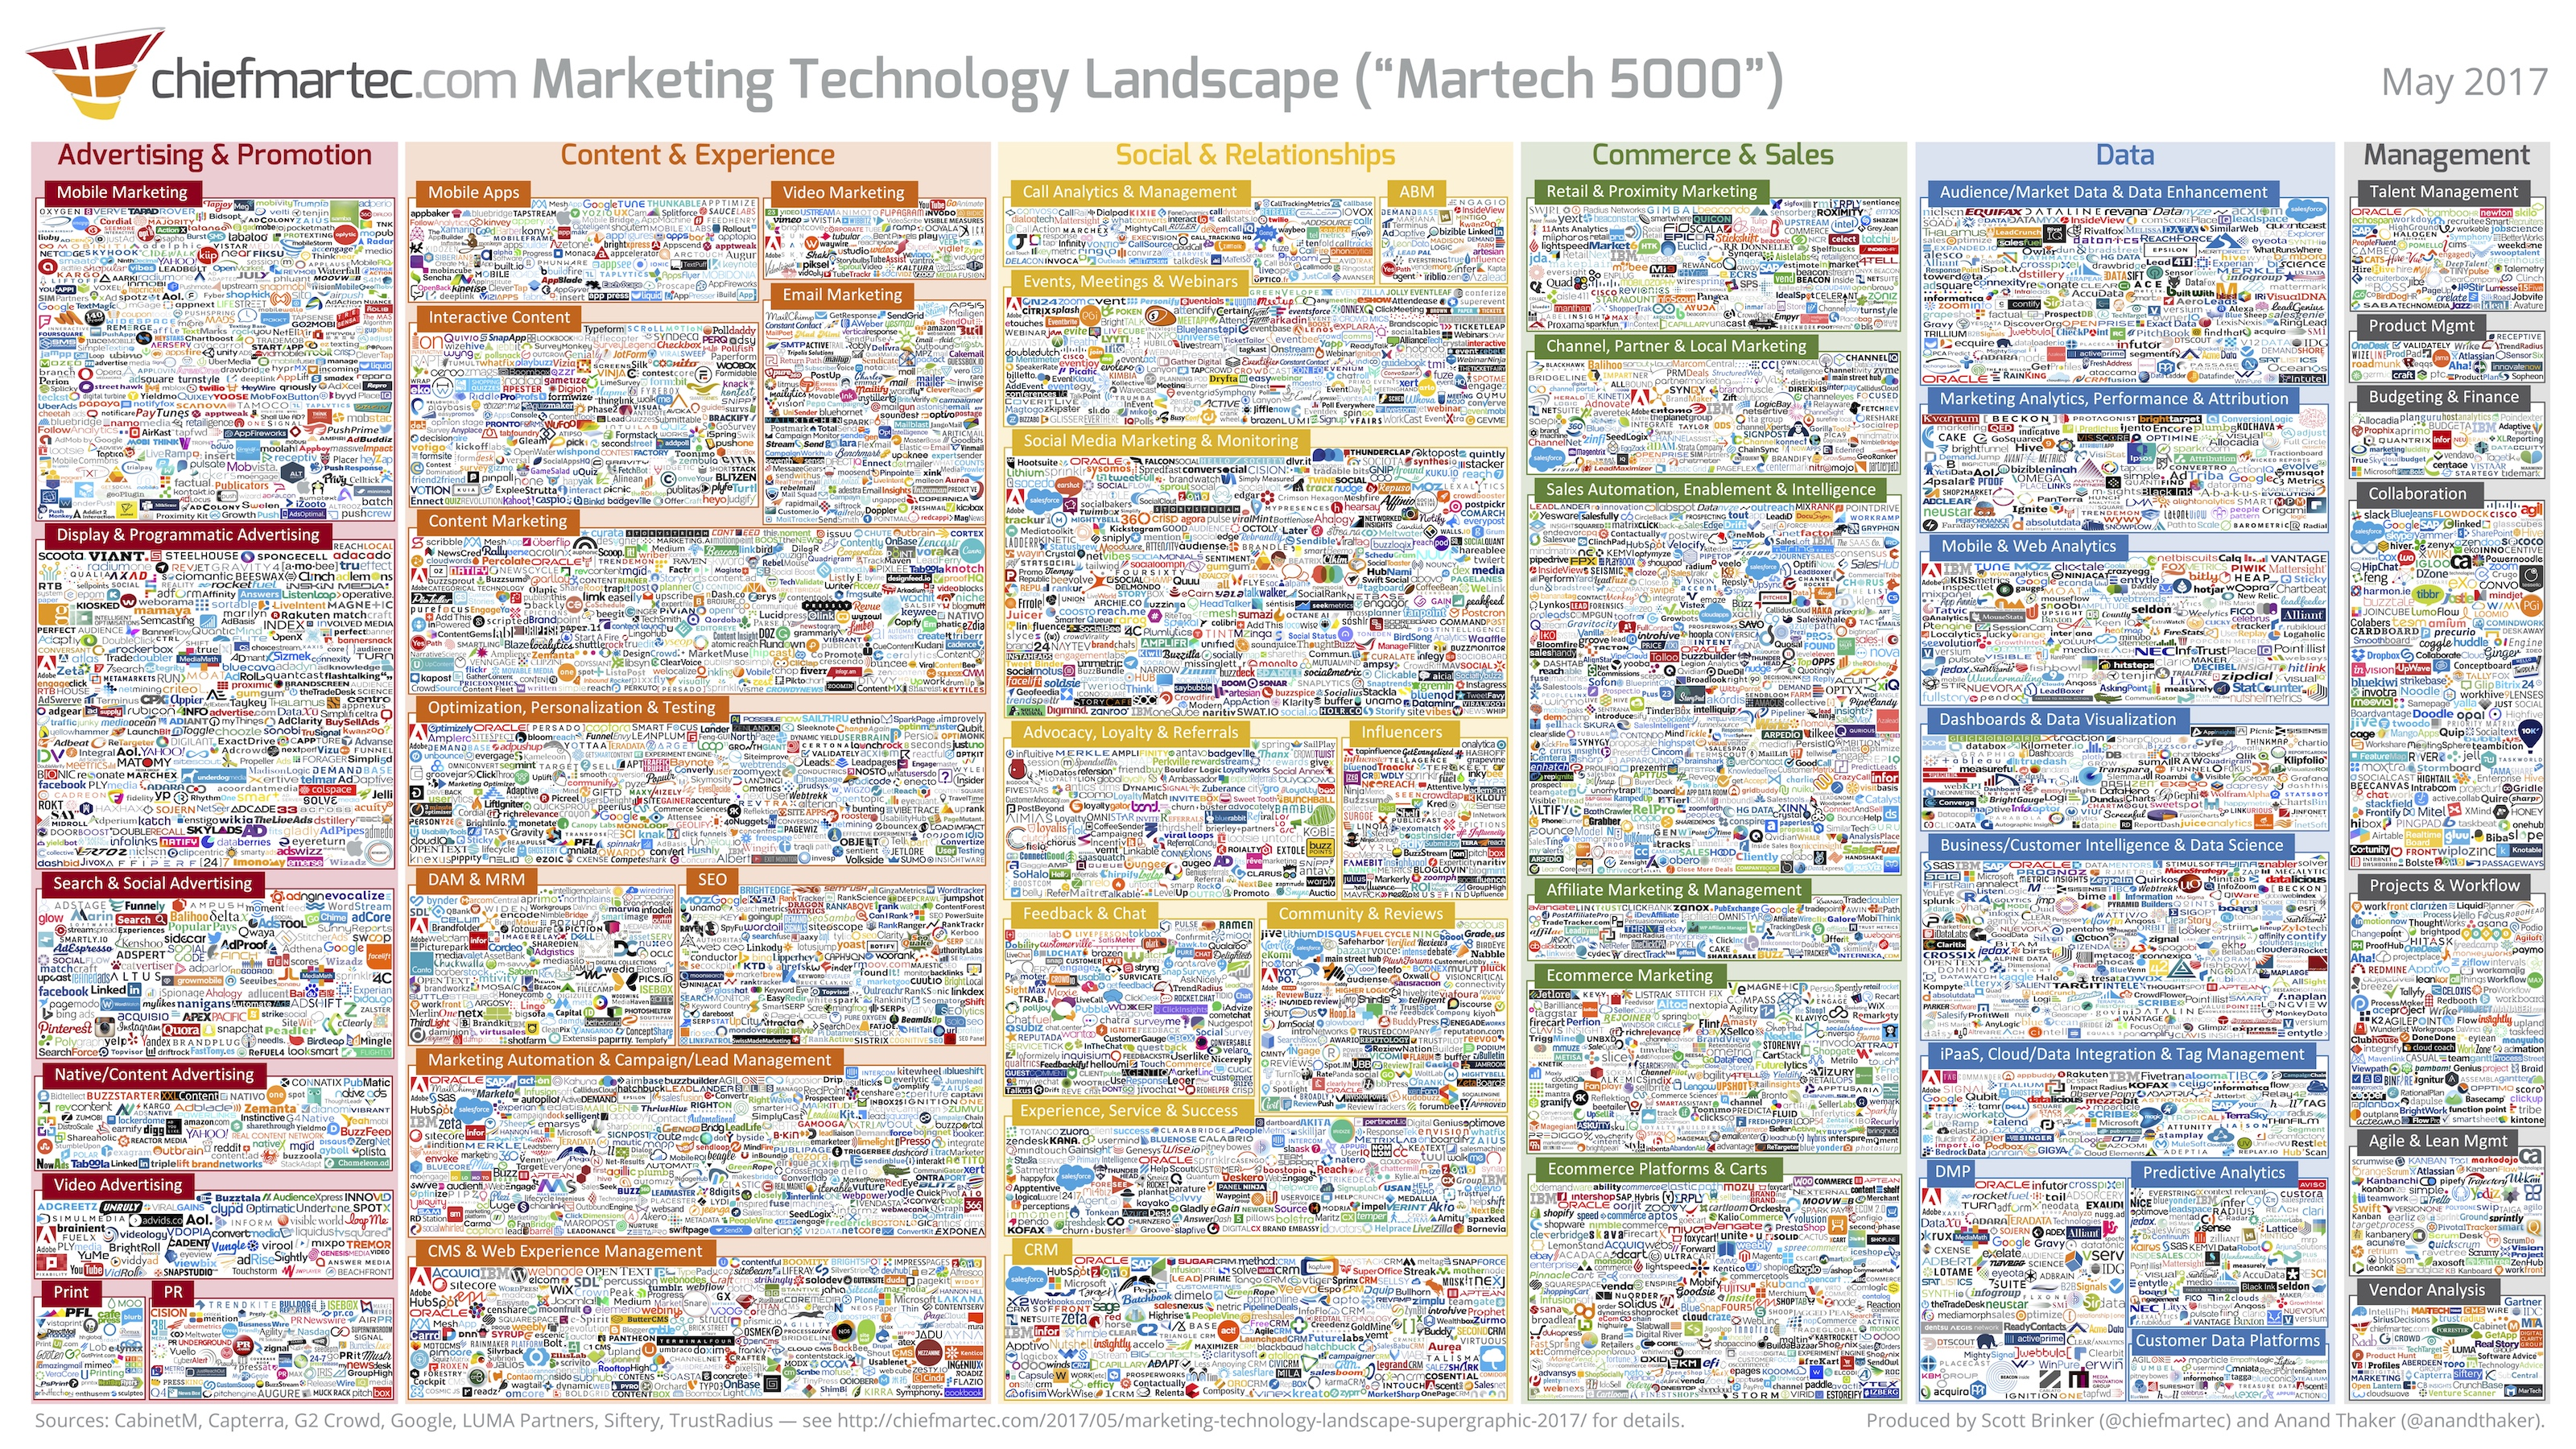 Mobile Martech Building The Mobile First Marketing Tech